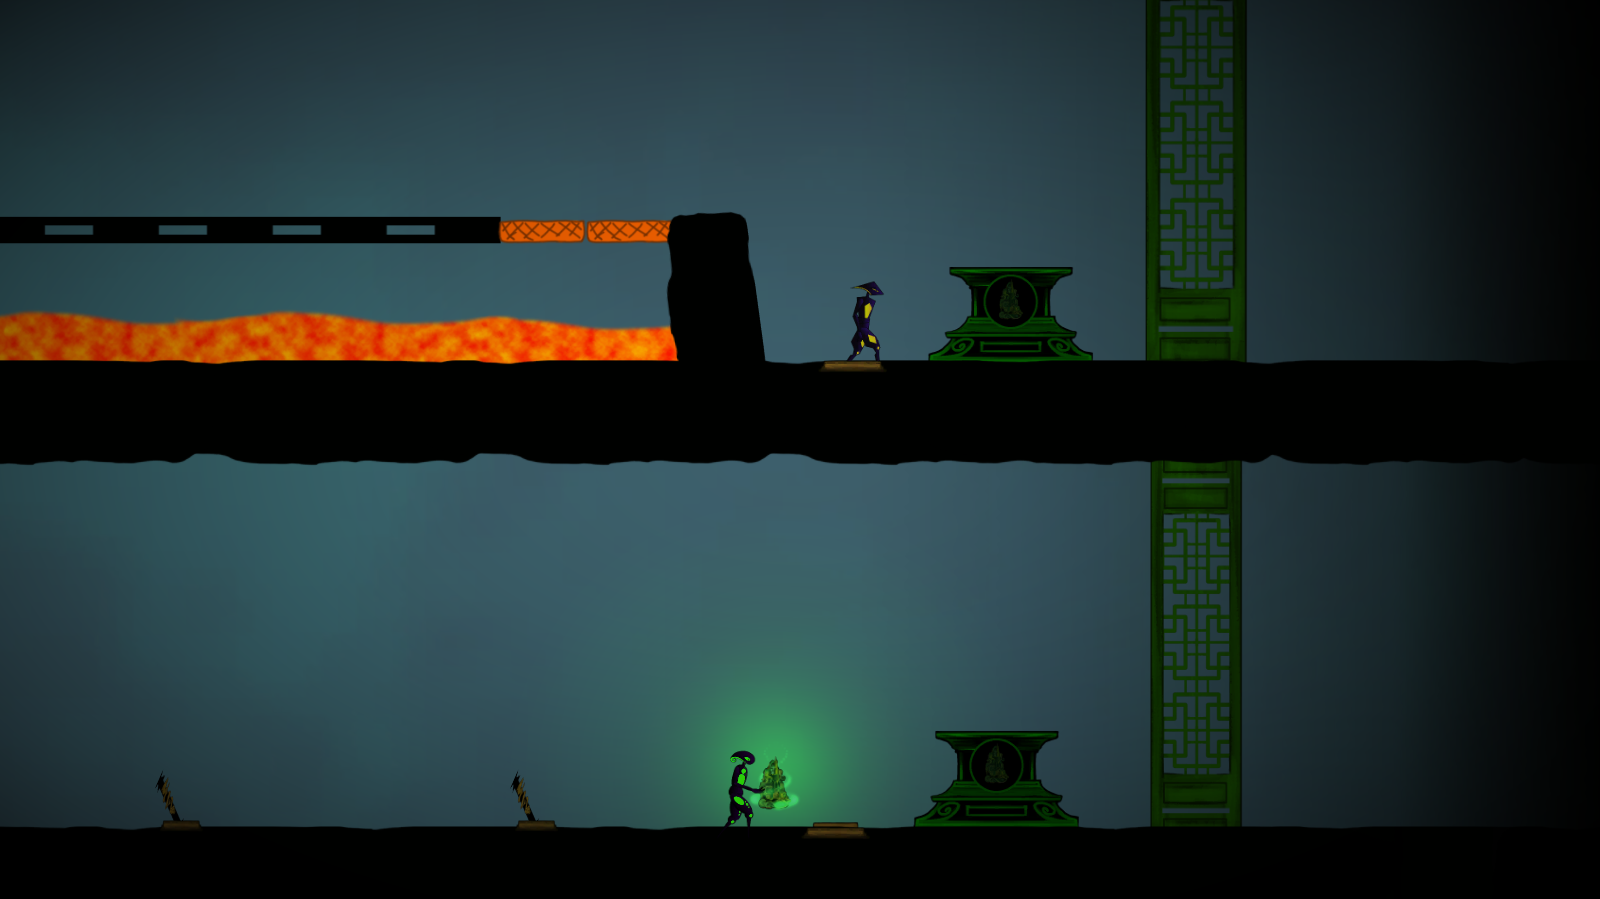 The end of the first Greenlight level.